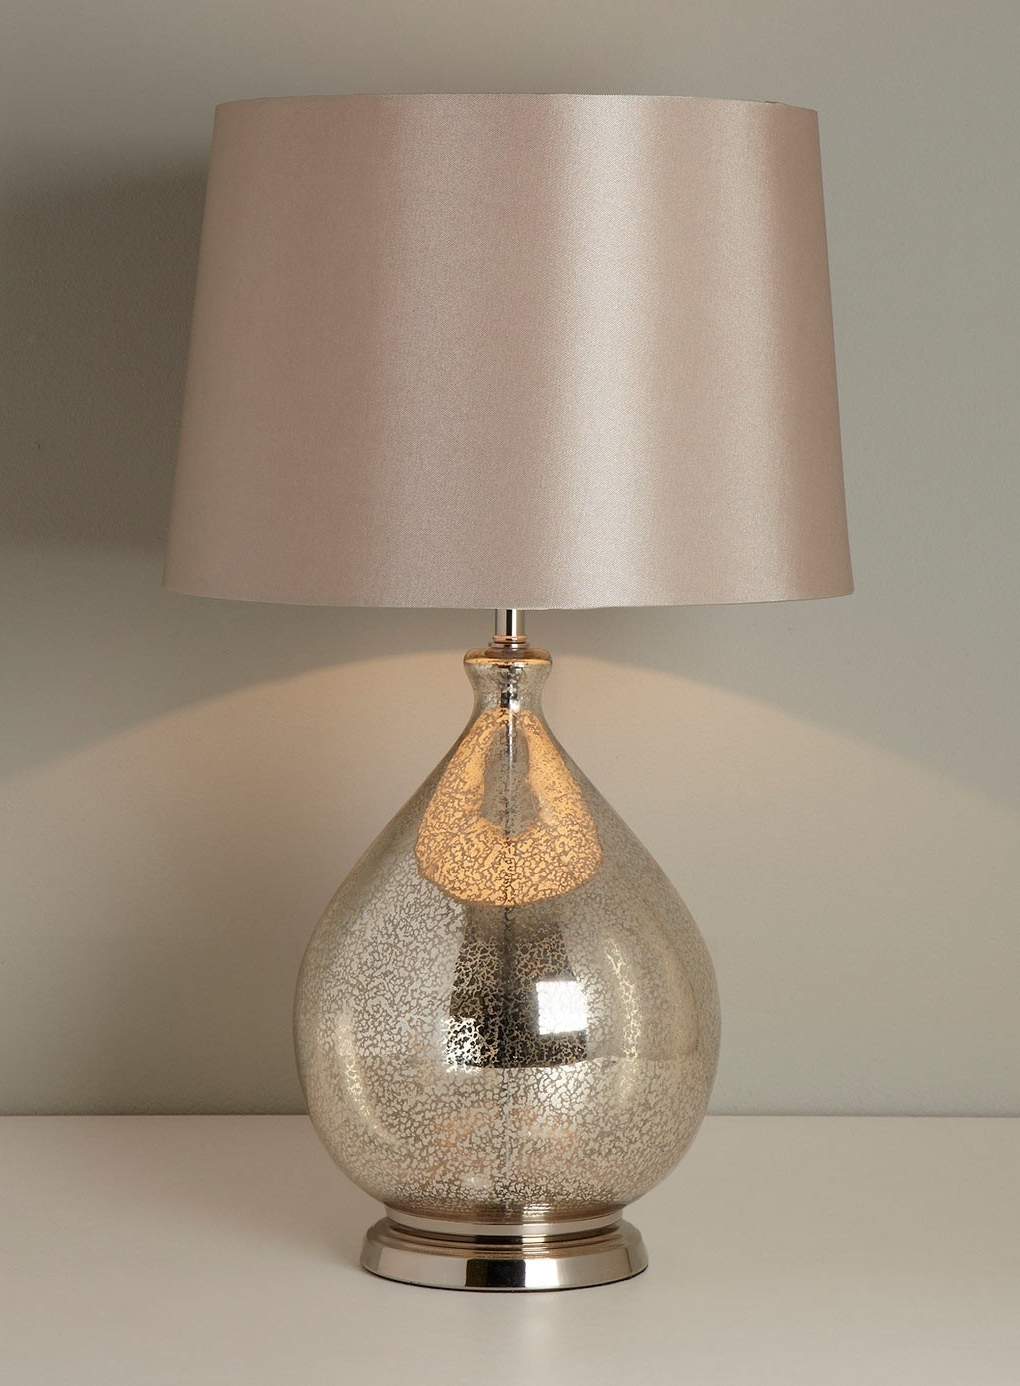 Gohemiantravellers With Best And Newest Large Table Lamps For Living Room (View 7 of 15)